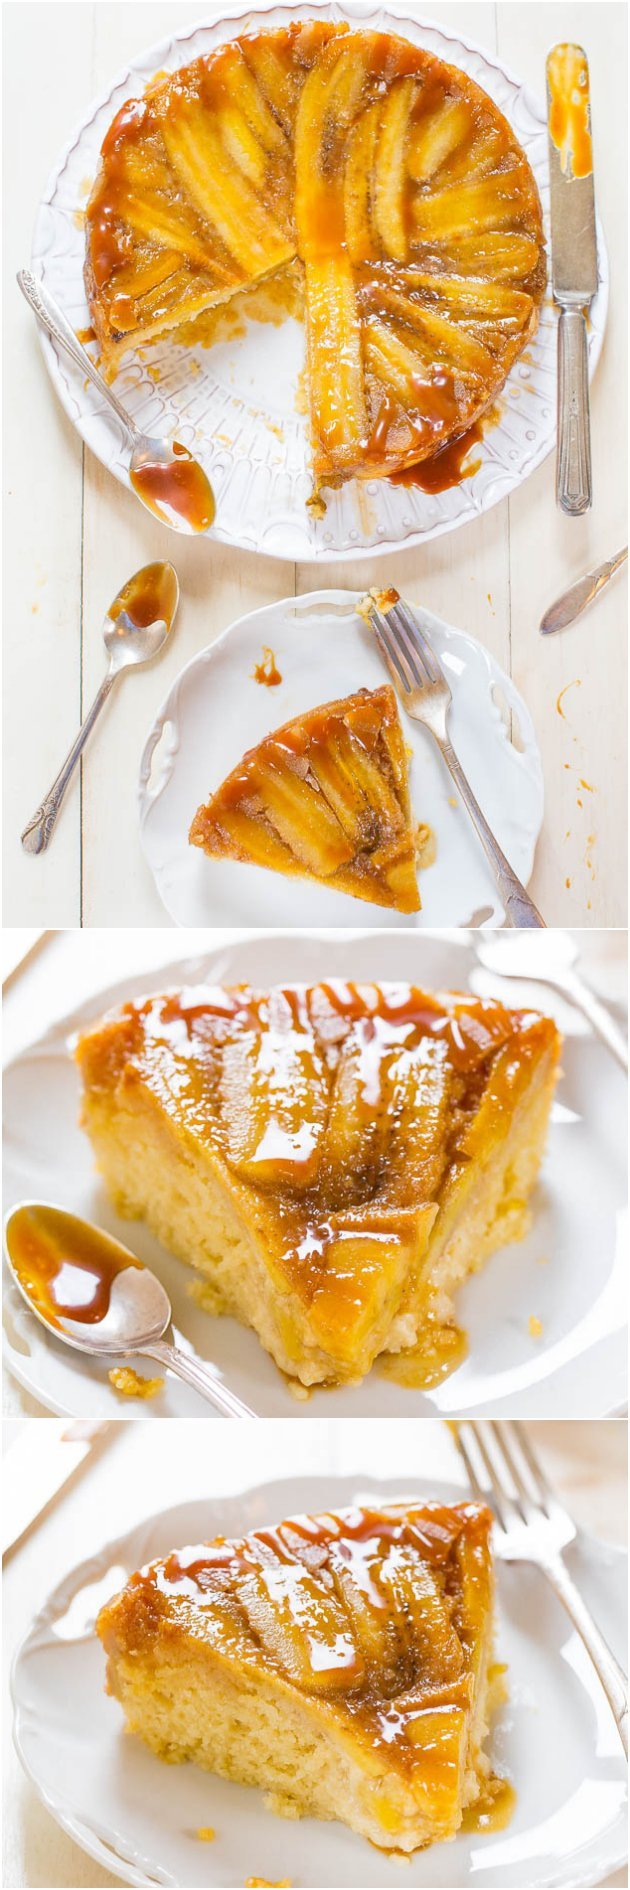 Four picture collage of banana upside down cake